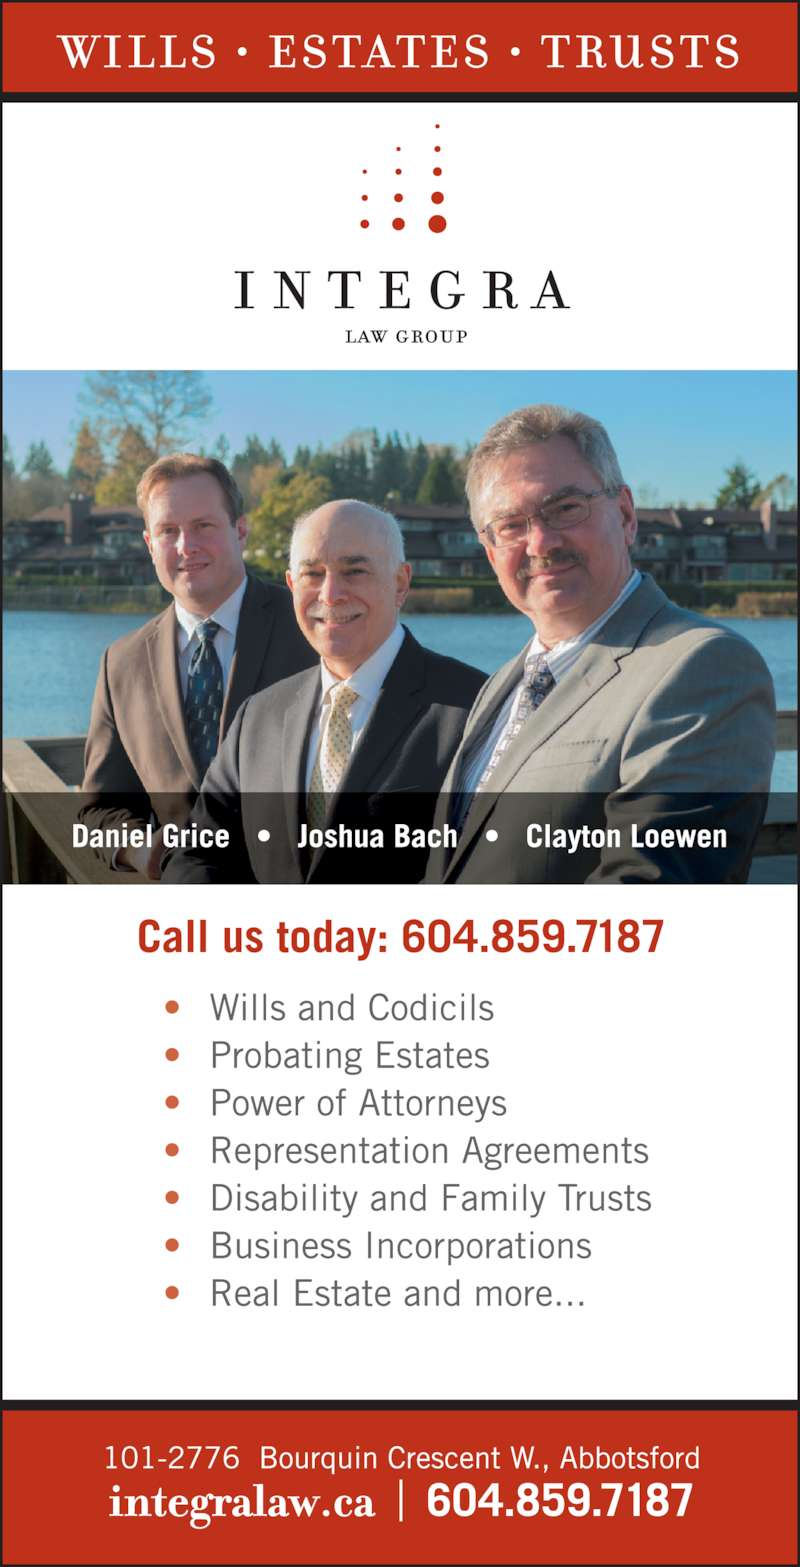 Integra Law Group (604-859-7187) - Display Ad - Probating of Estates Representation Agreements Powers of Attorney Administration of Estates Trust Agreements Committeeships Wills Prepared integralaw.ca call or visit us today 604-859-7187 F. CLAYTON LOEWEN Barrister & Solicitor JOSHUA M. BACH EXPERIENCED     RELIABLE     KNOWLEDGEABLE Wills, Estates & Trusts 101-2776 Bourquin Crescent West, Abbotsford, BC  V2S 6A4